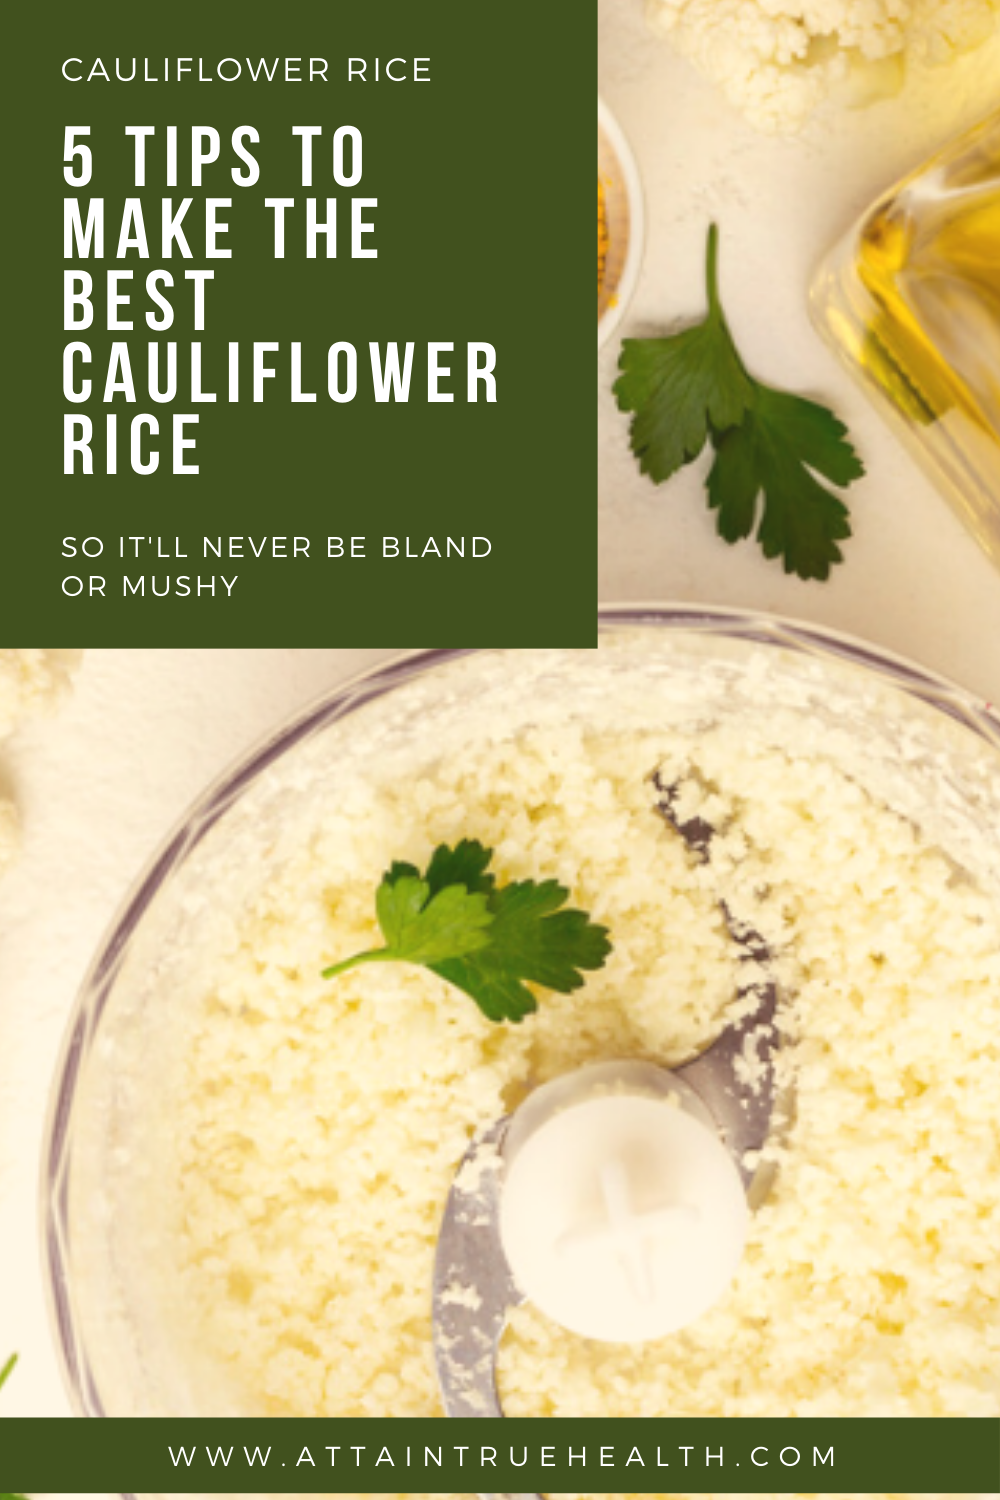 tips for the best cauliflower rice